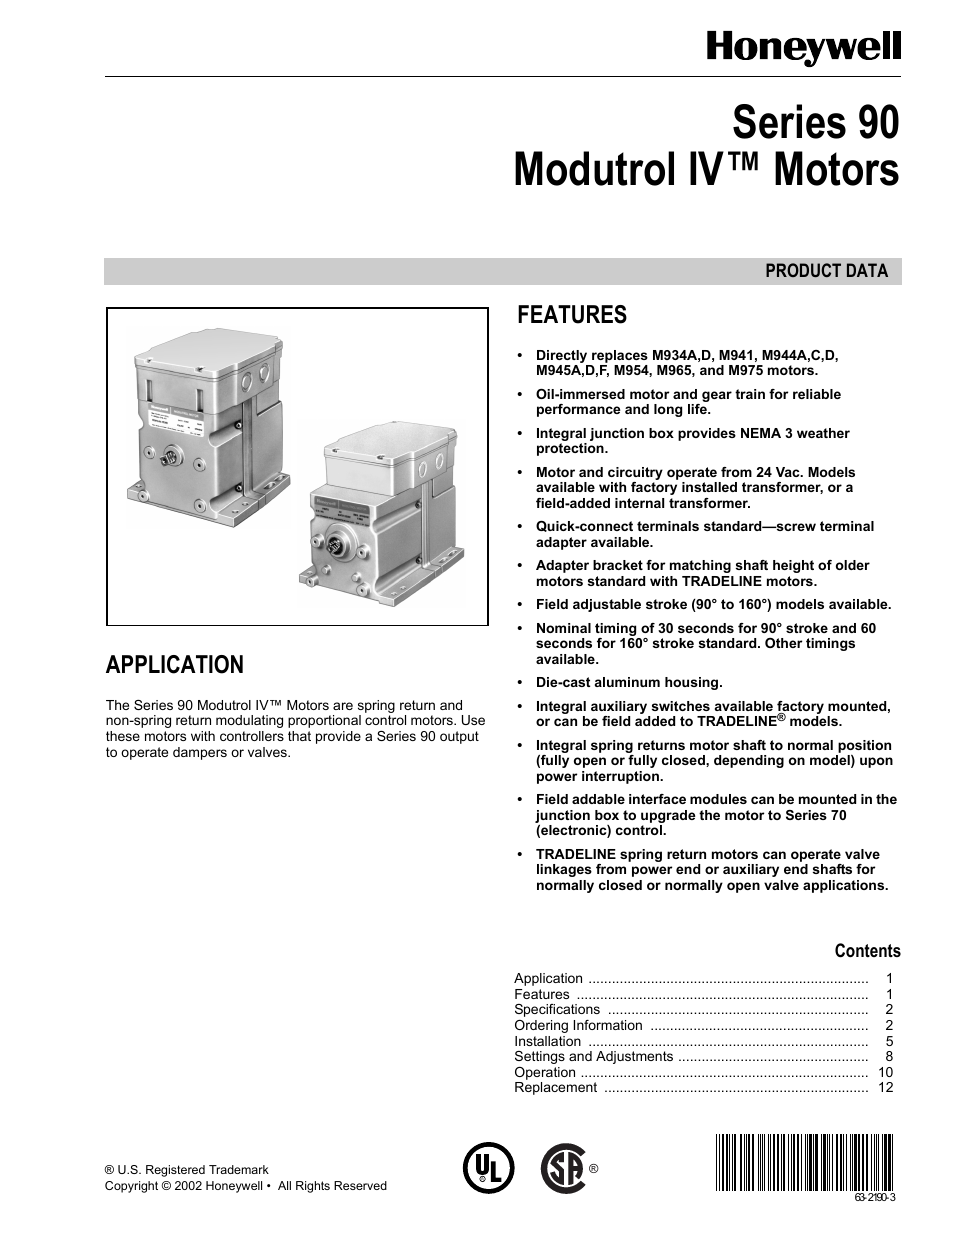 honeywell modutrol iv motors series 90 user manual 12 pages